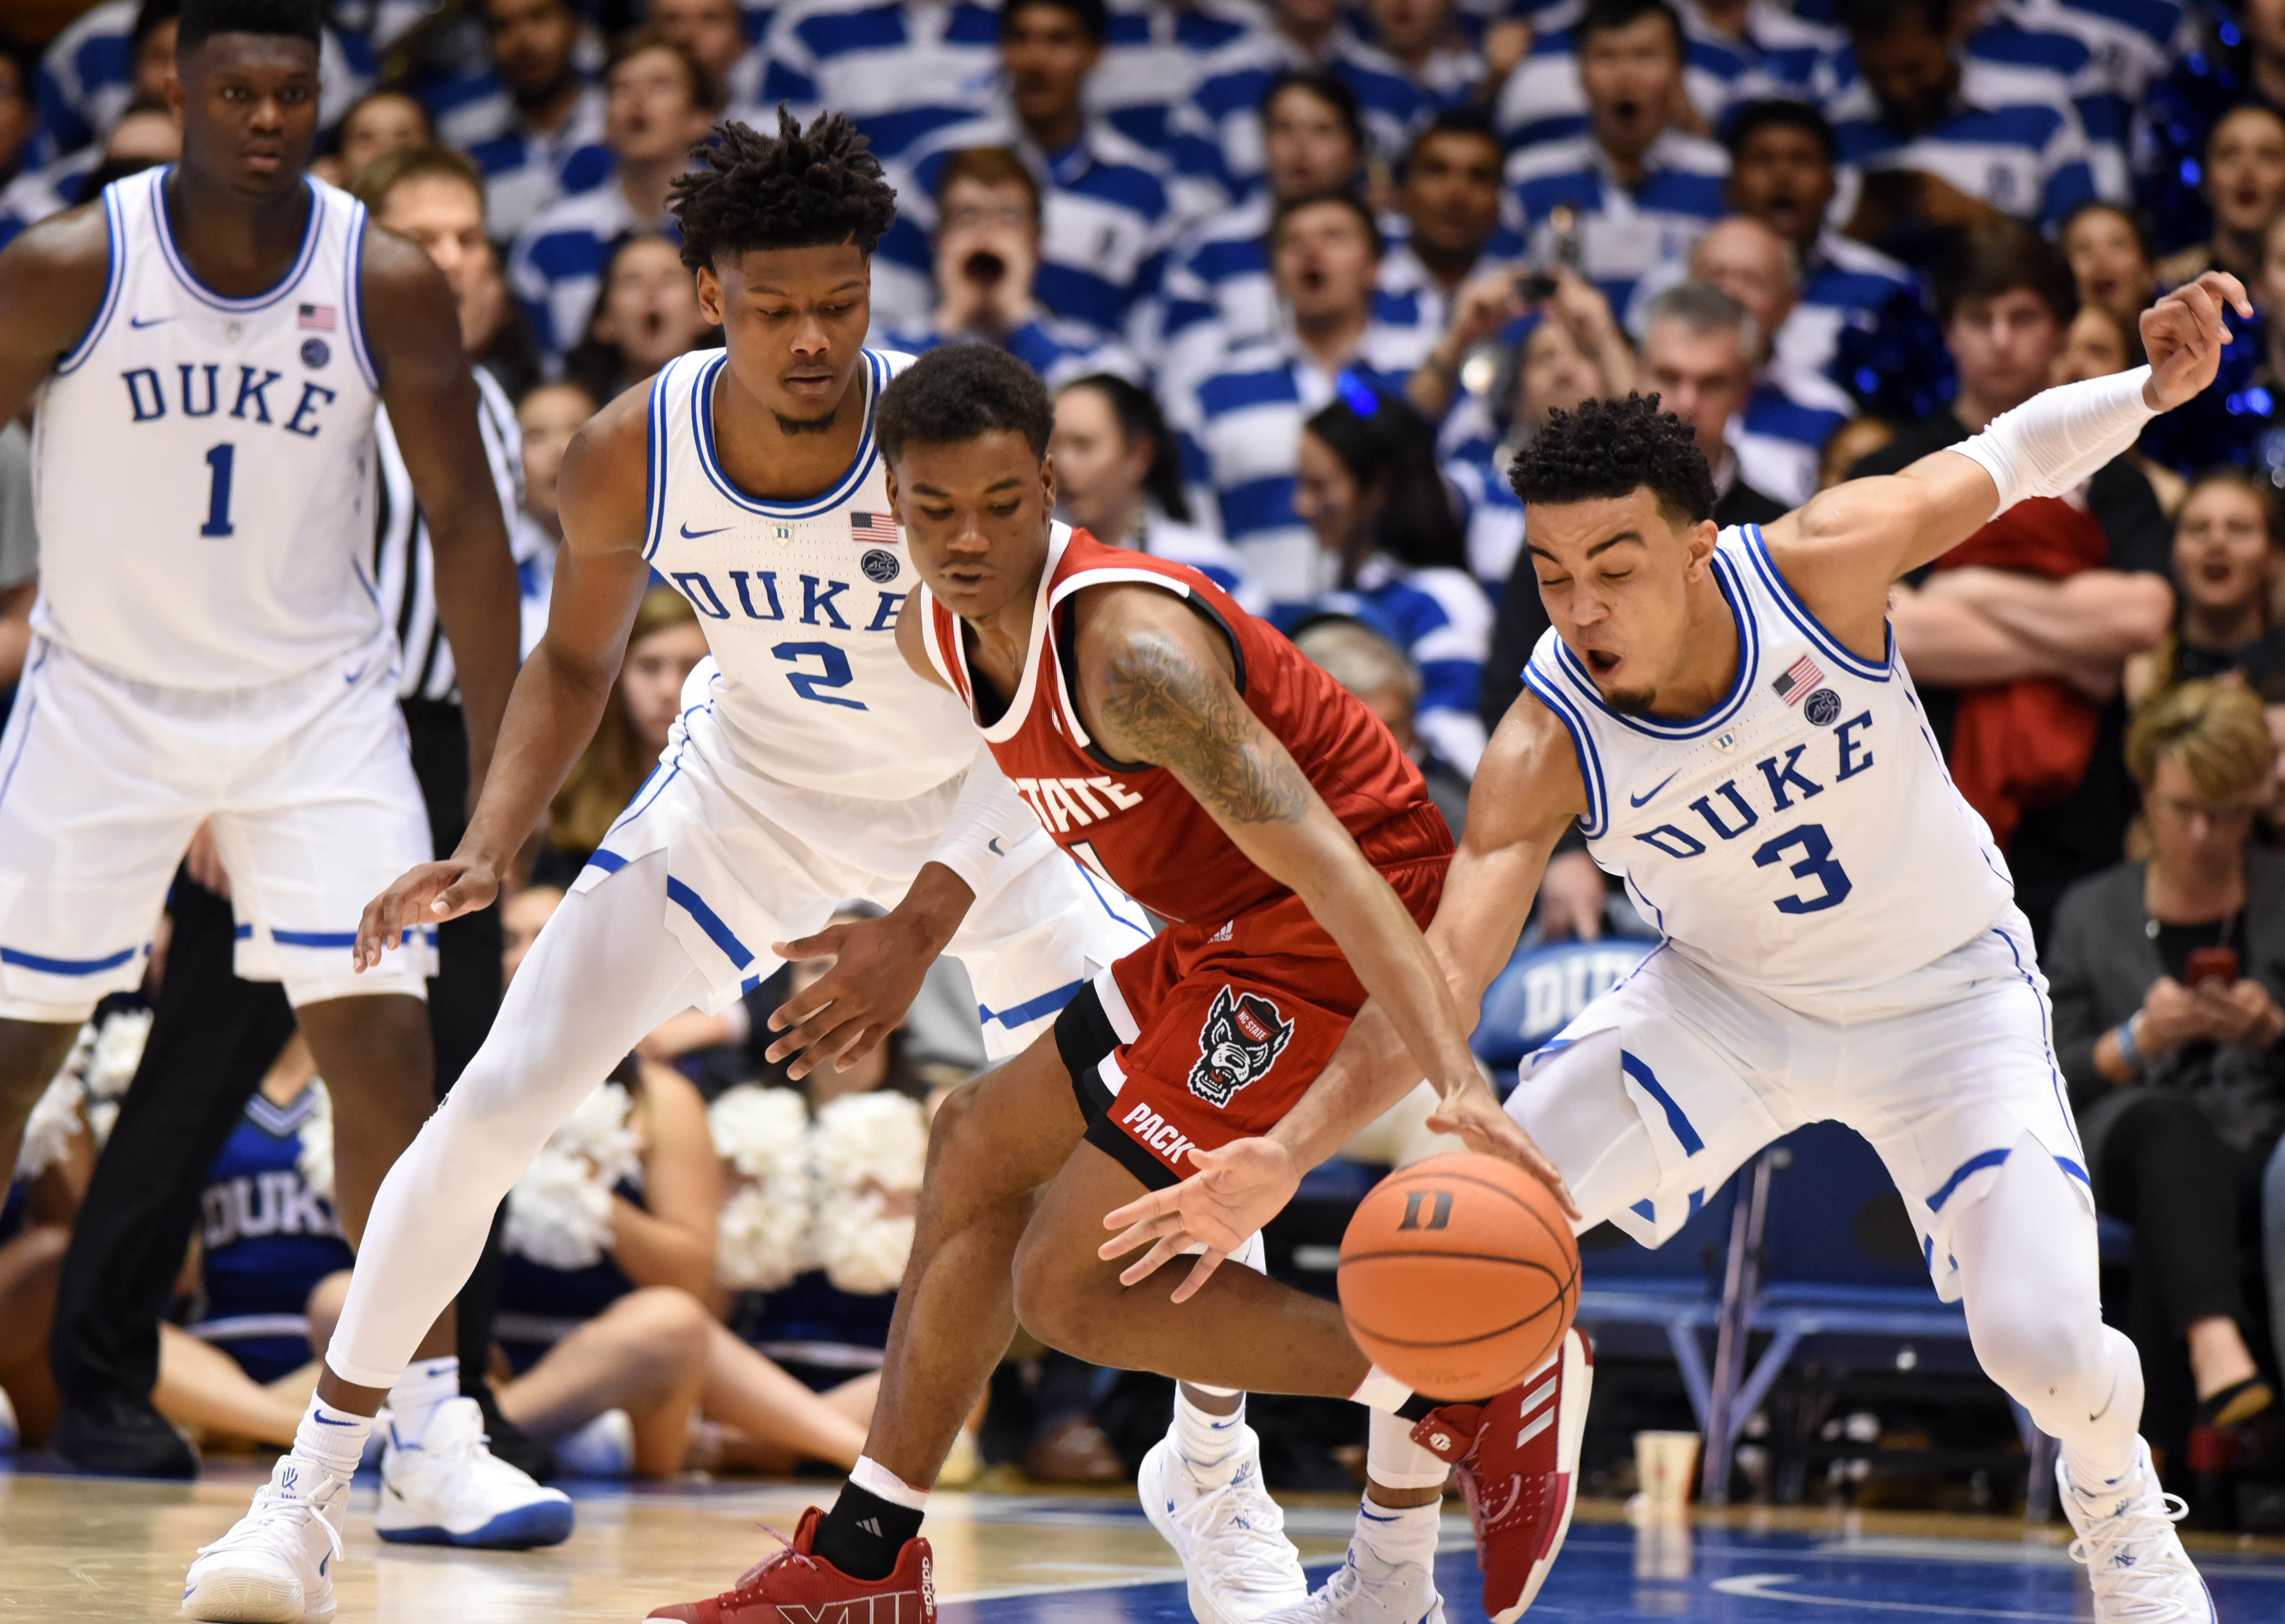 Duke at NC State: Preview and Tale of the Tape